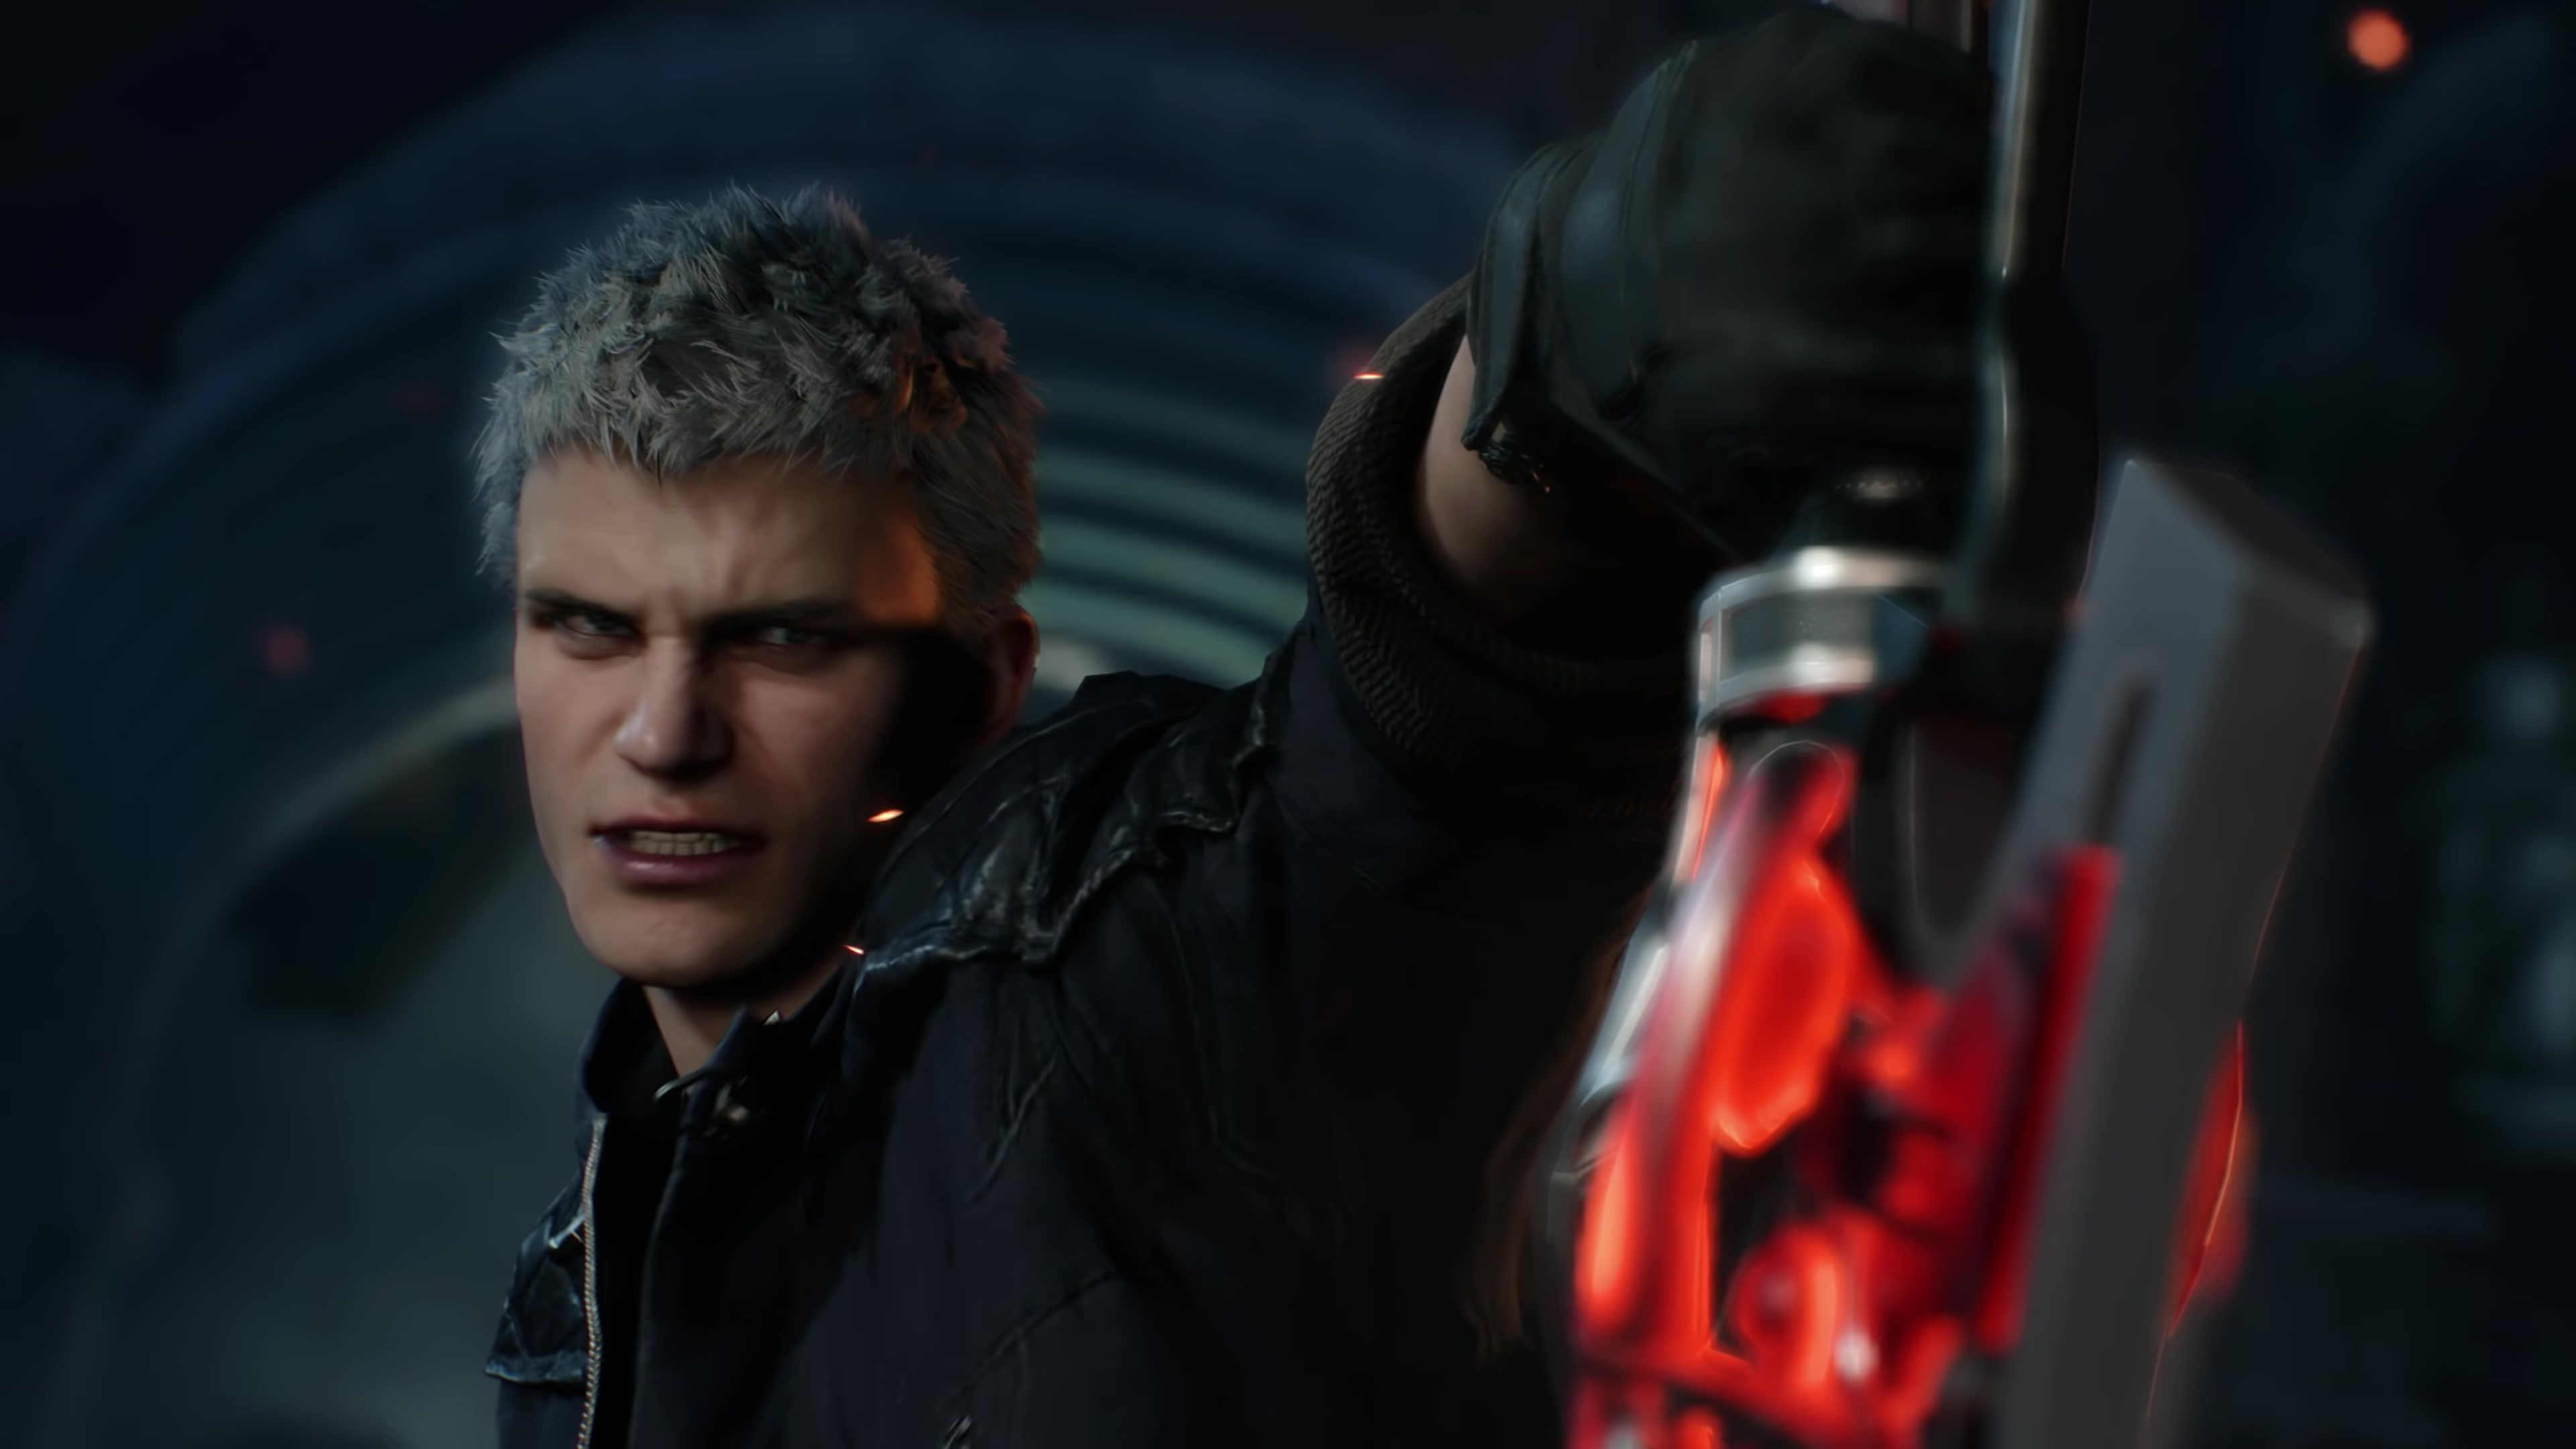 Devil May Cry 5 046.jpg - Devil May Cry 5